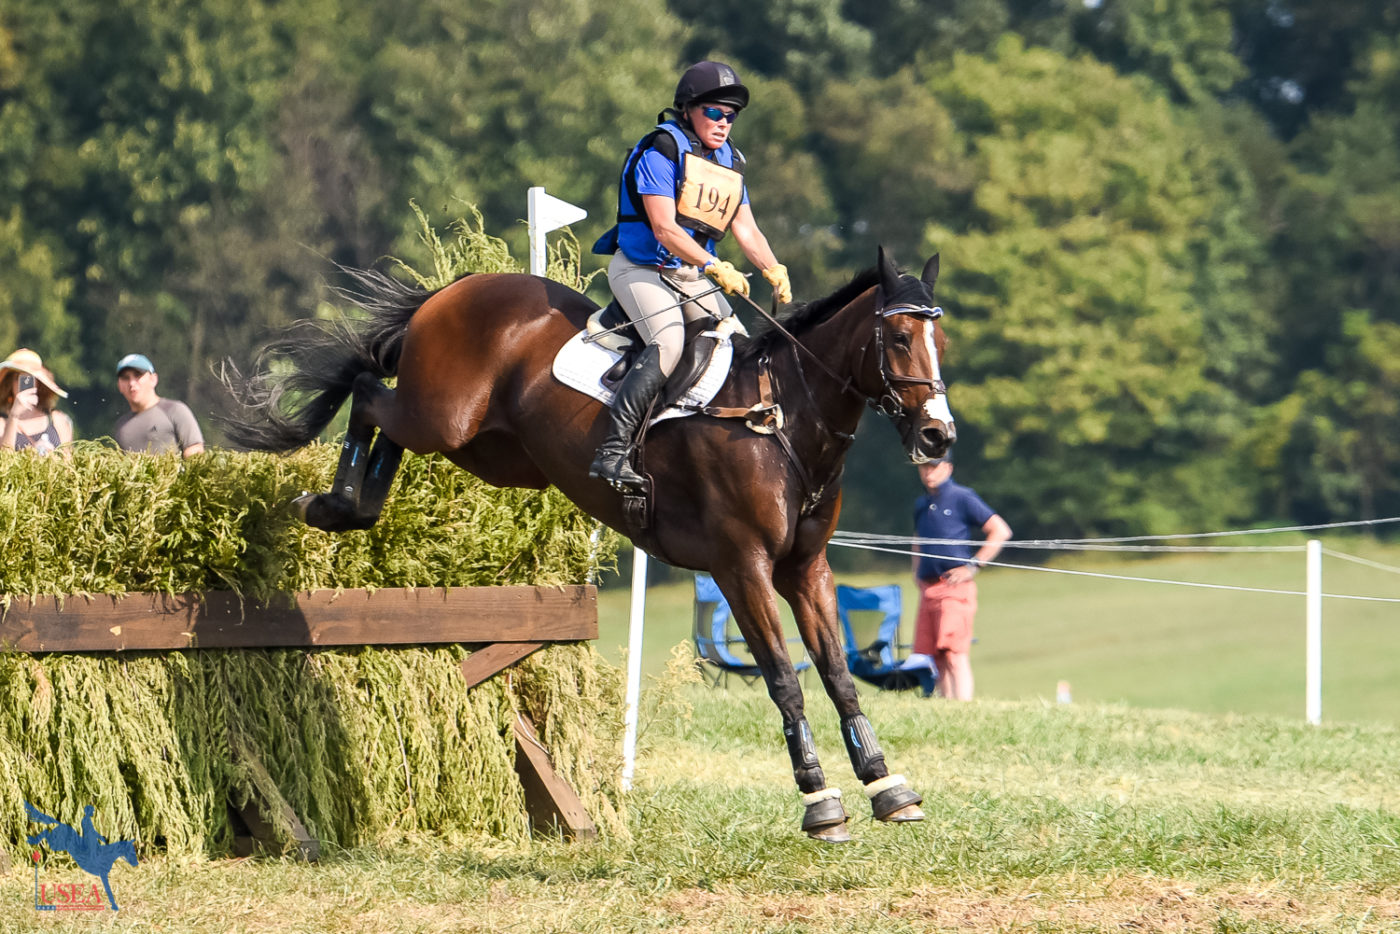 1st - Colleen Rutledge and Covert Rights - 30.3